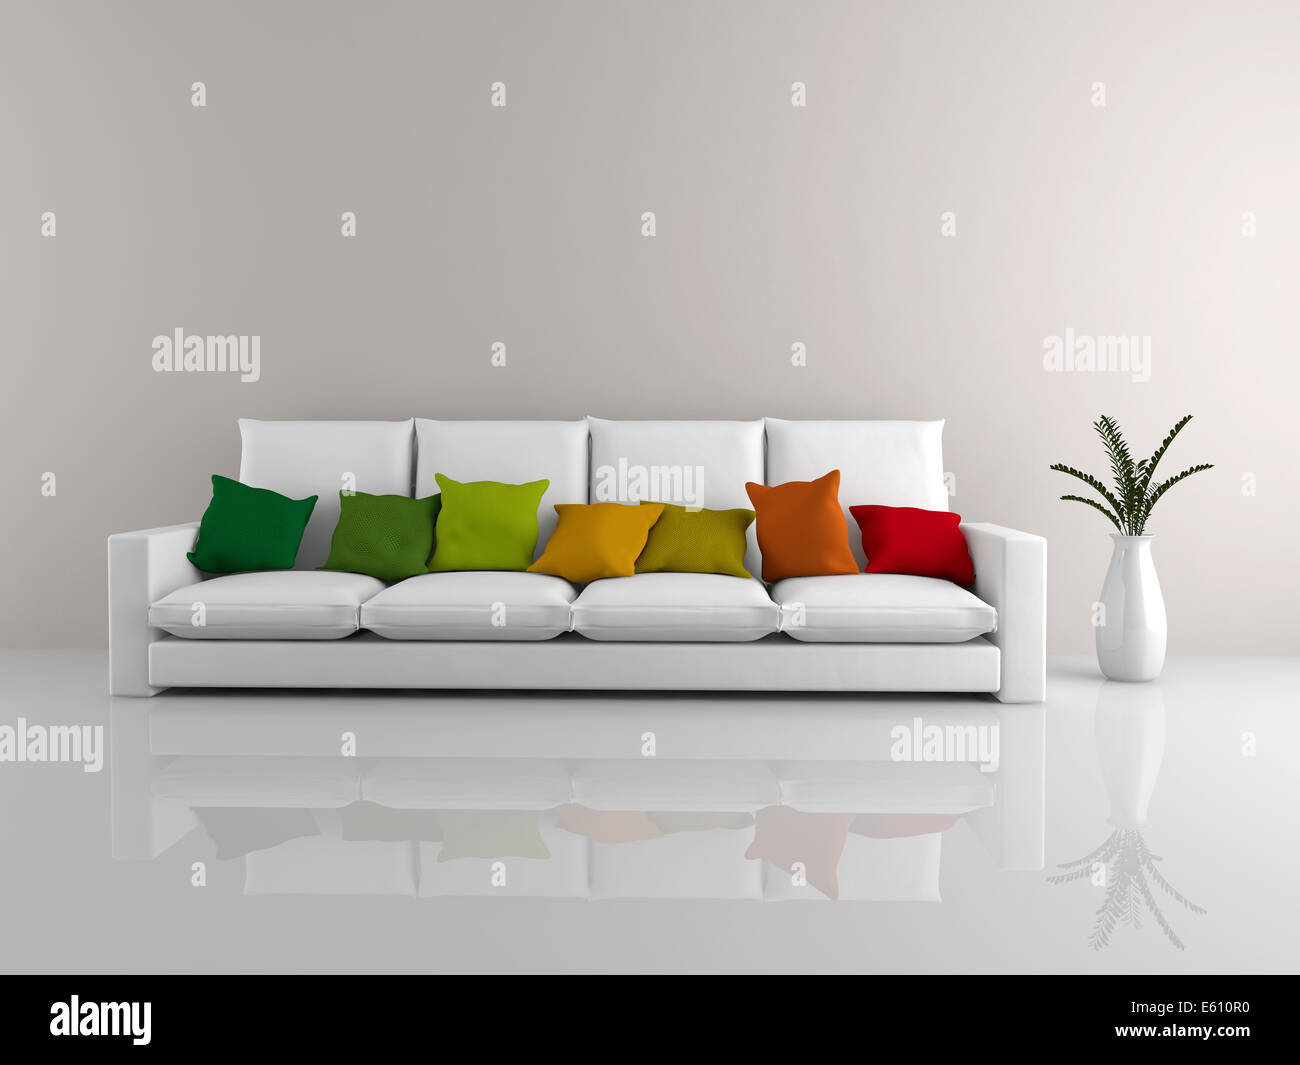 Brilliant A Room With A Minimalist White Sofa Covered In Colorful Uwap Interior Chair Design Uwaporg